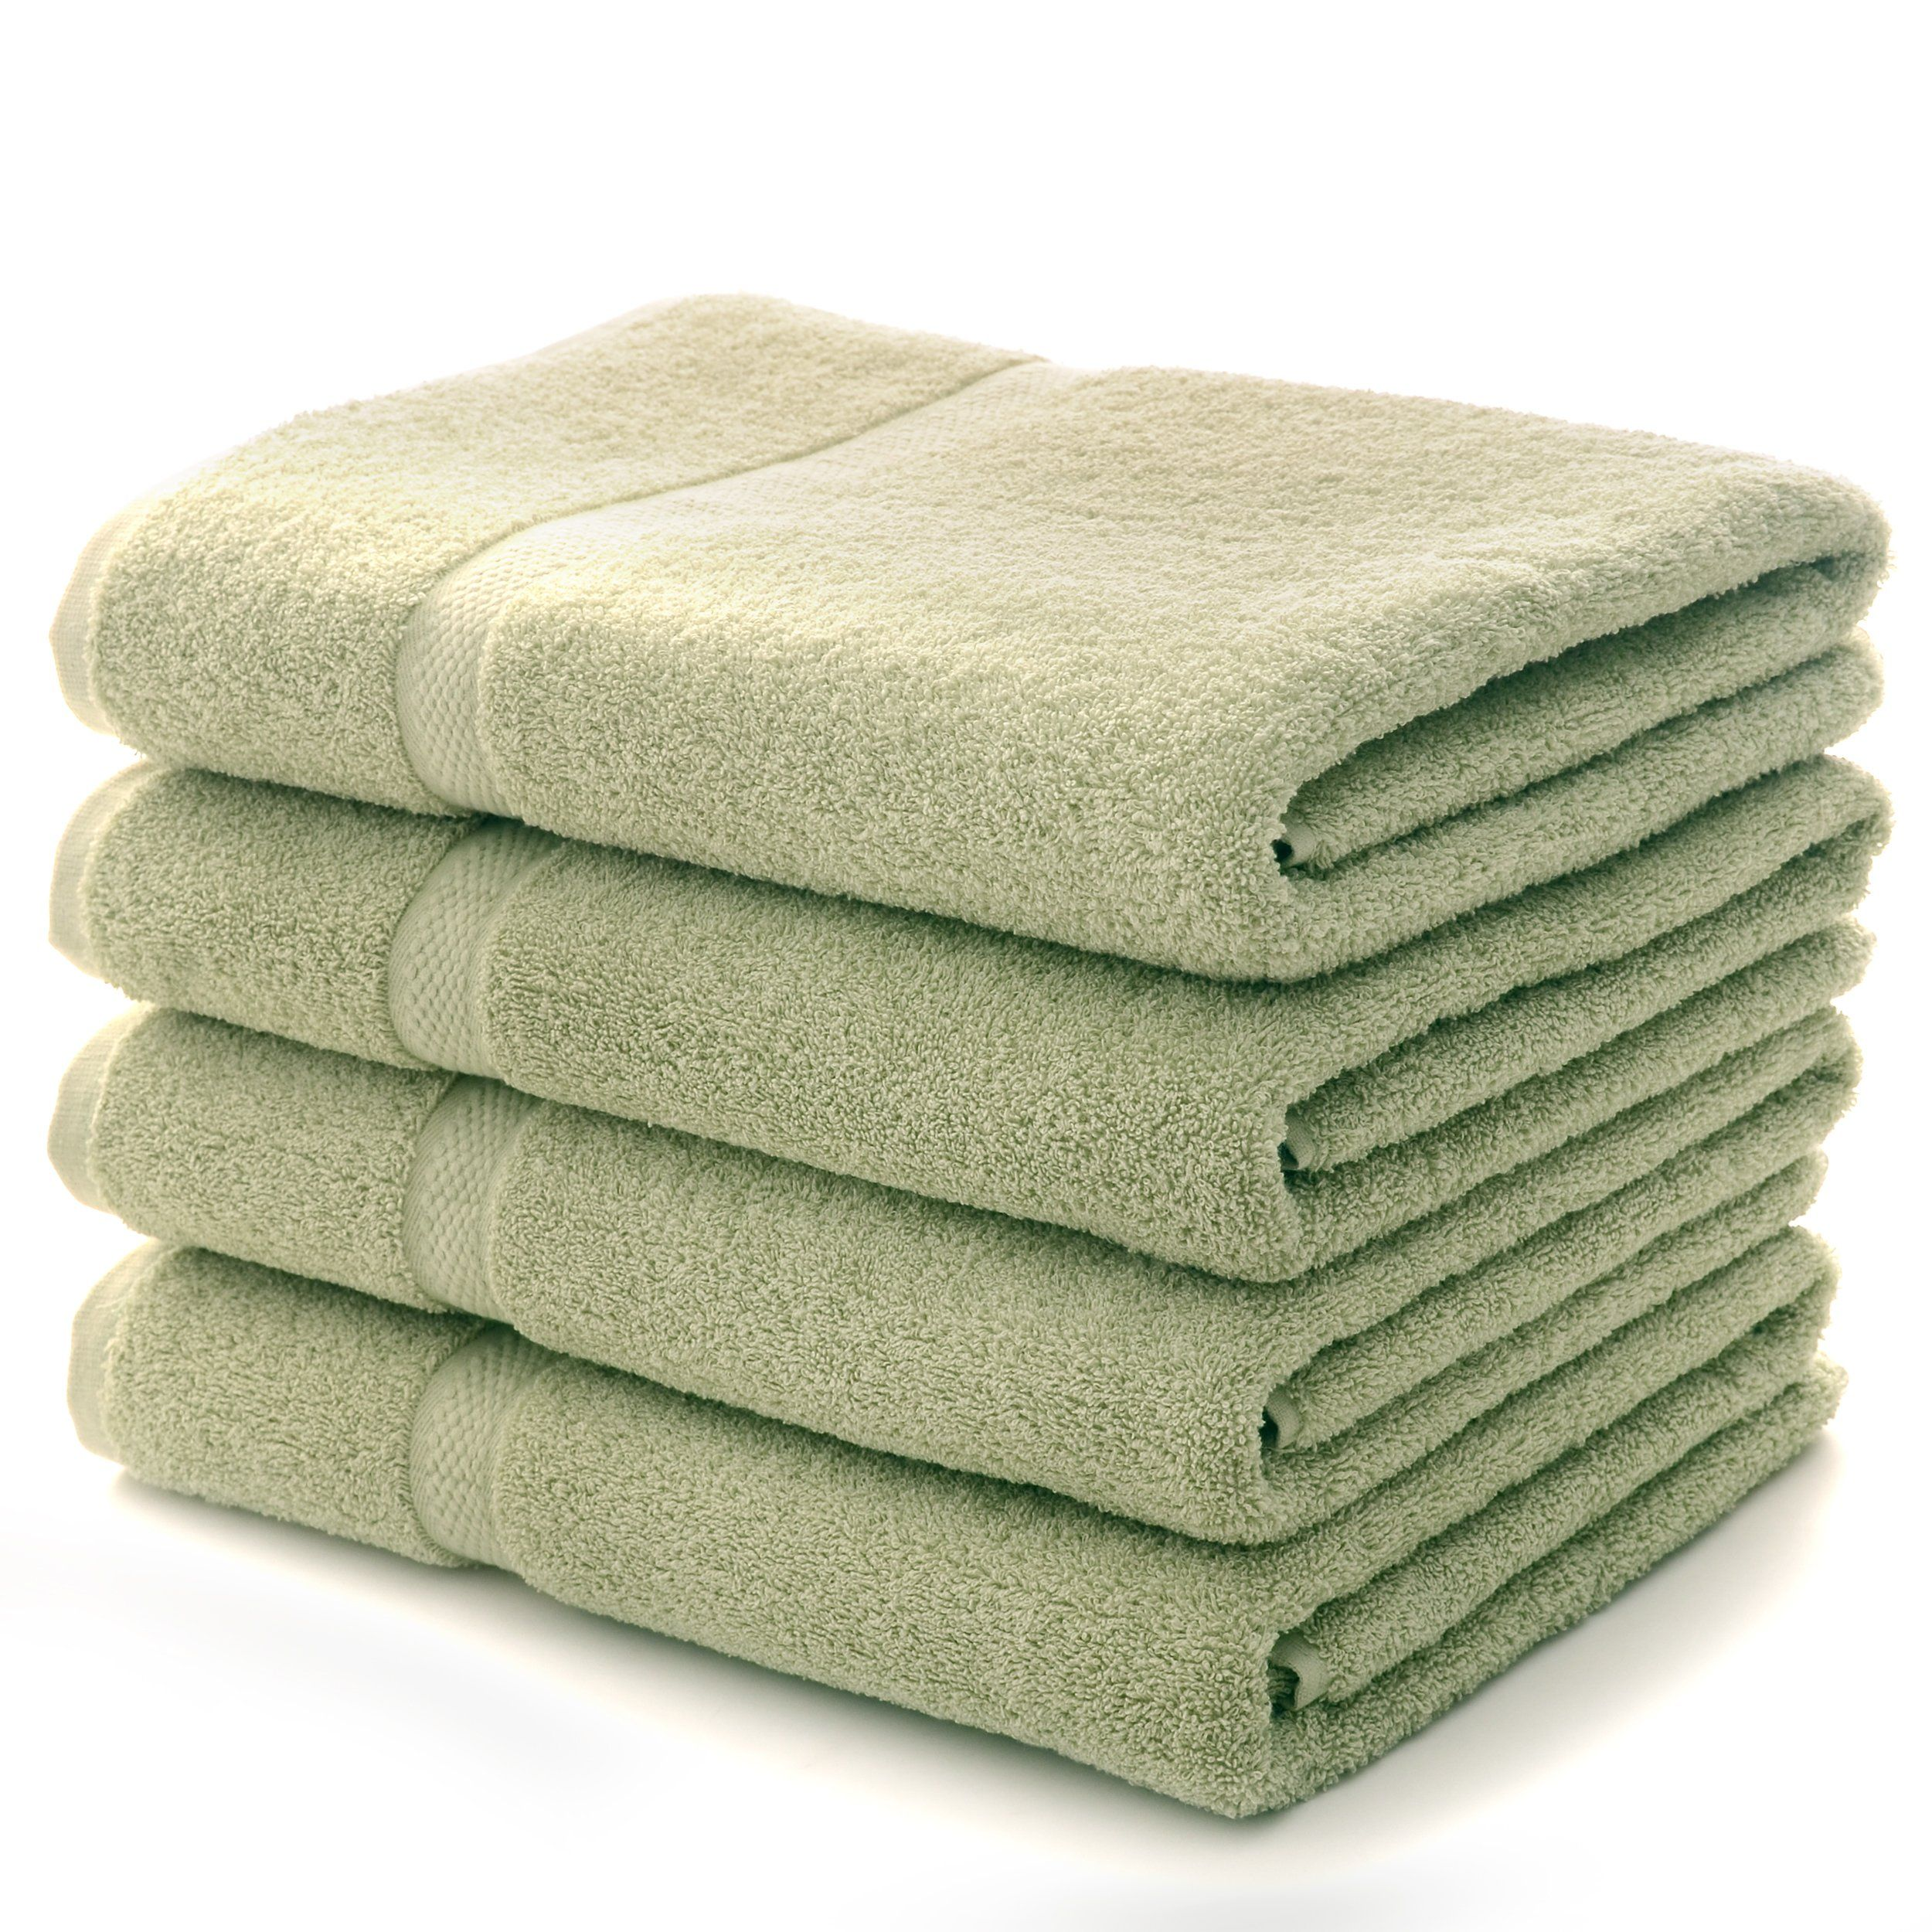 You Can T Go Wrong With Quality Luxurious Bath Towels Reveal The